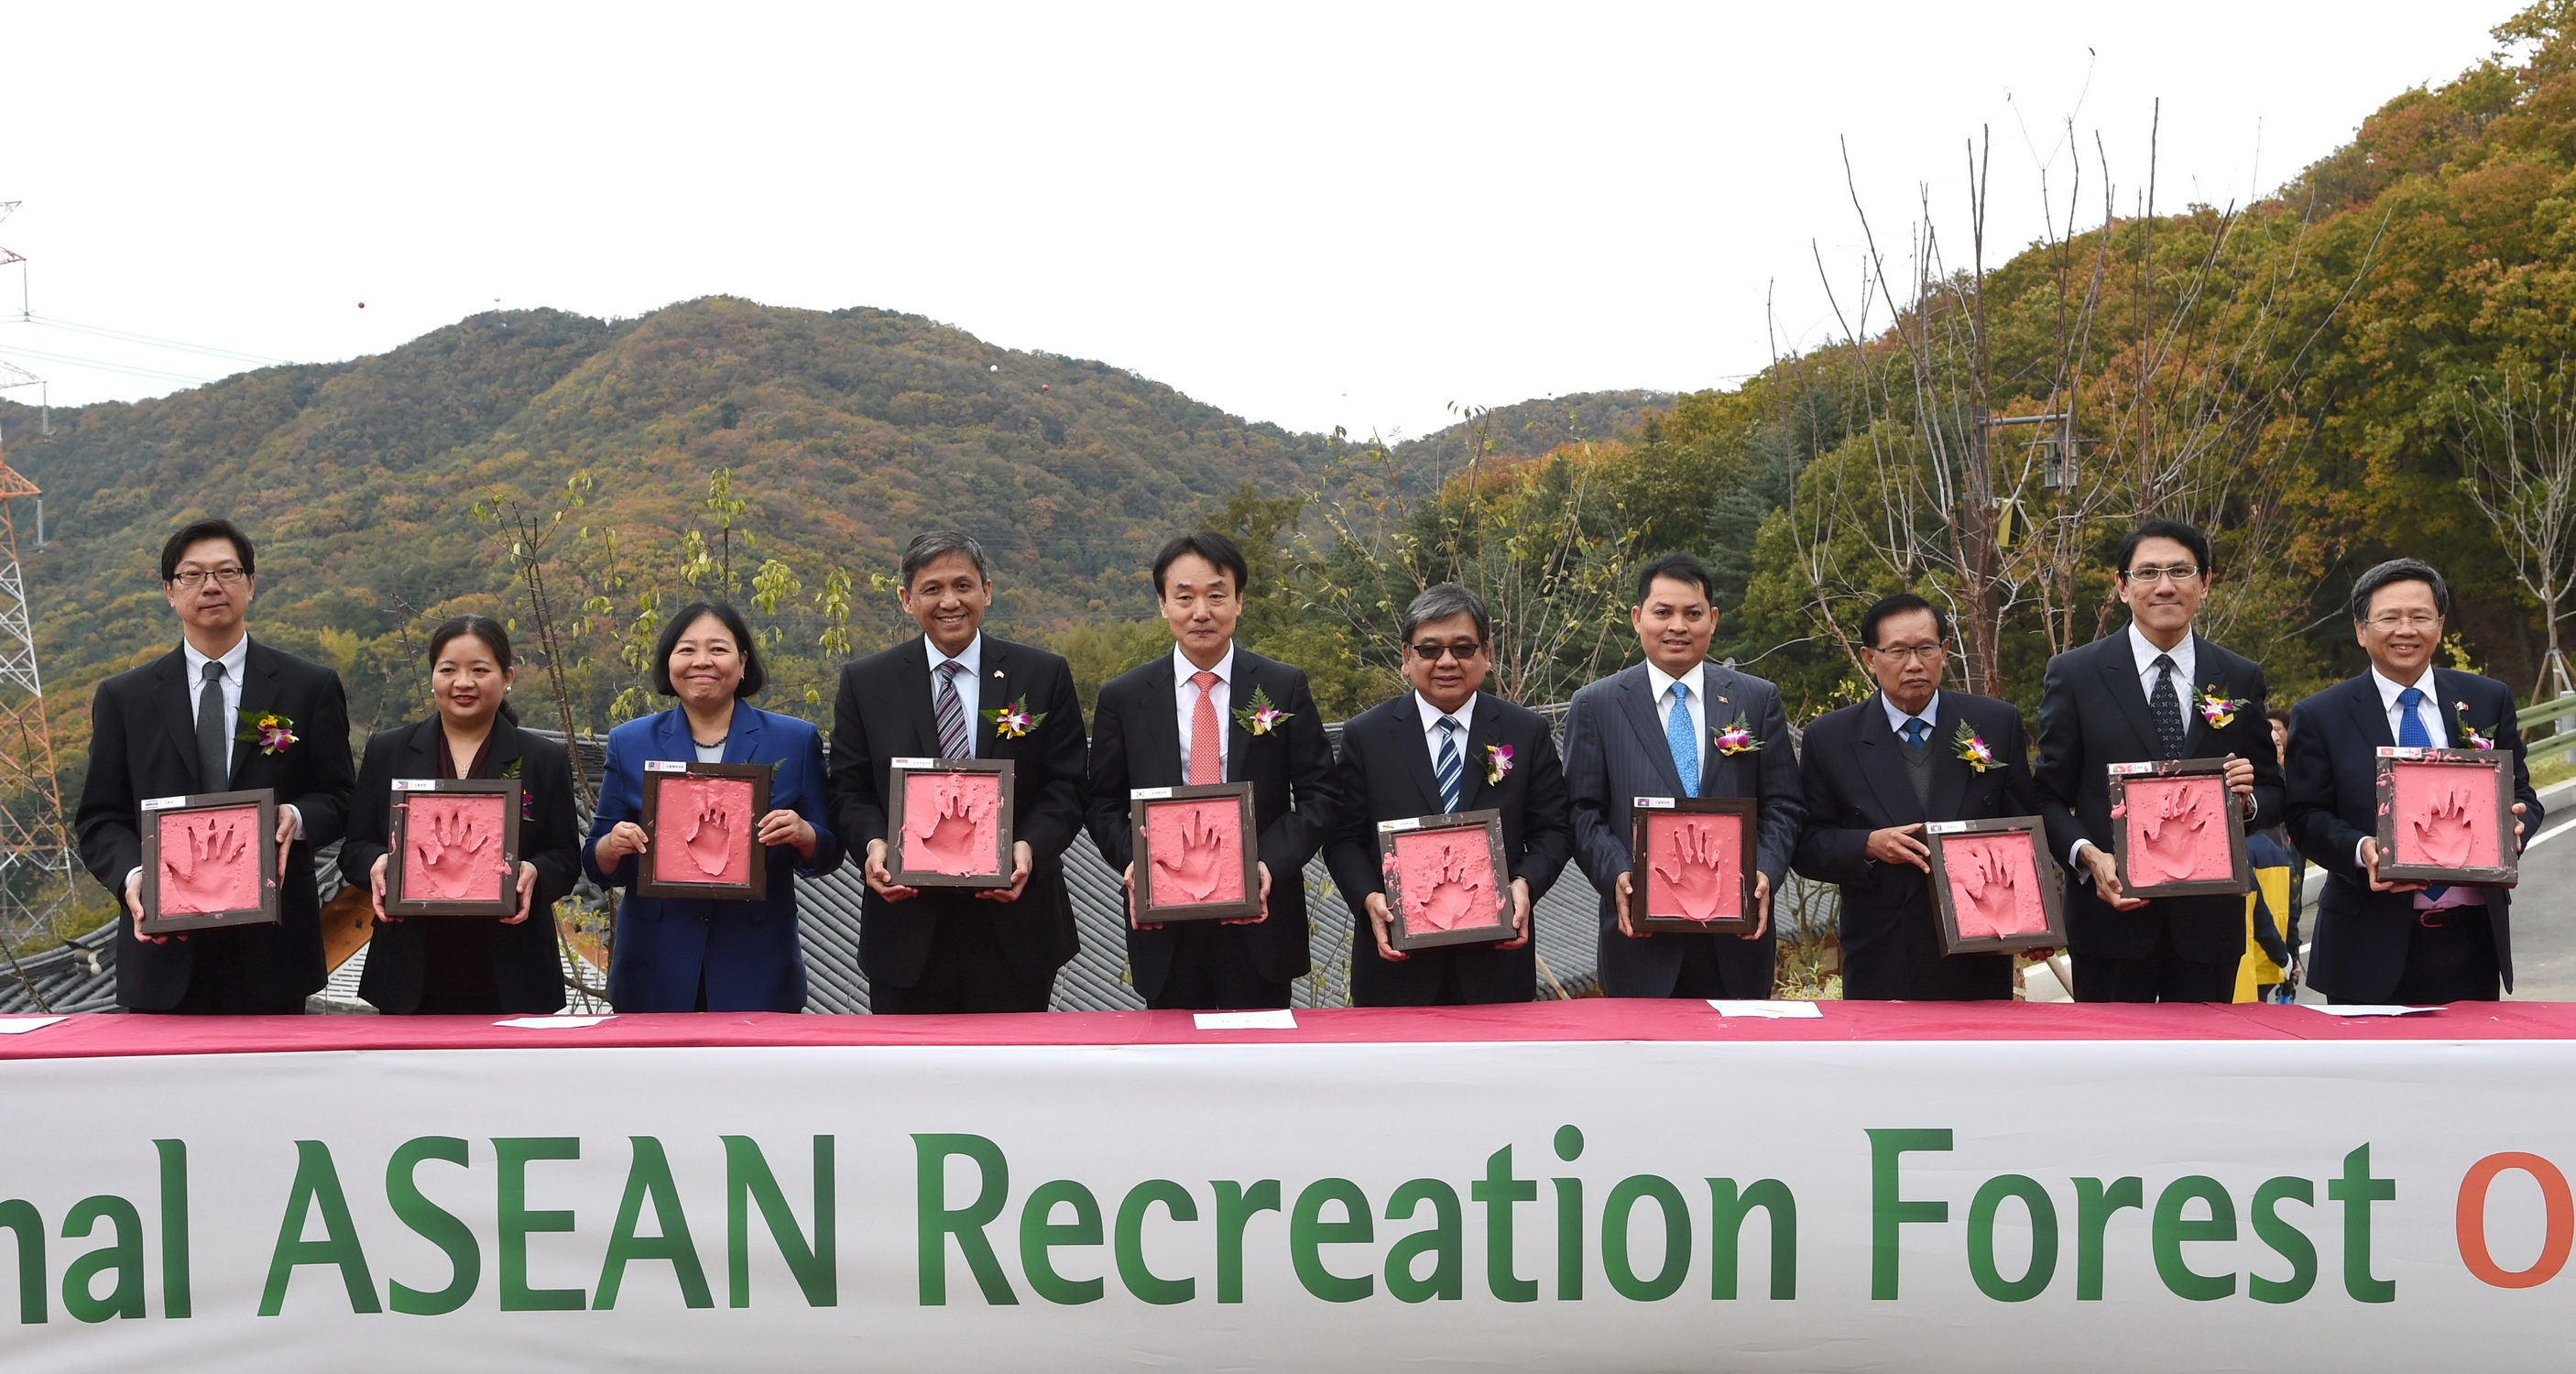 Opening of ASEAN Recreation Forest